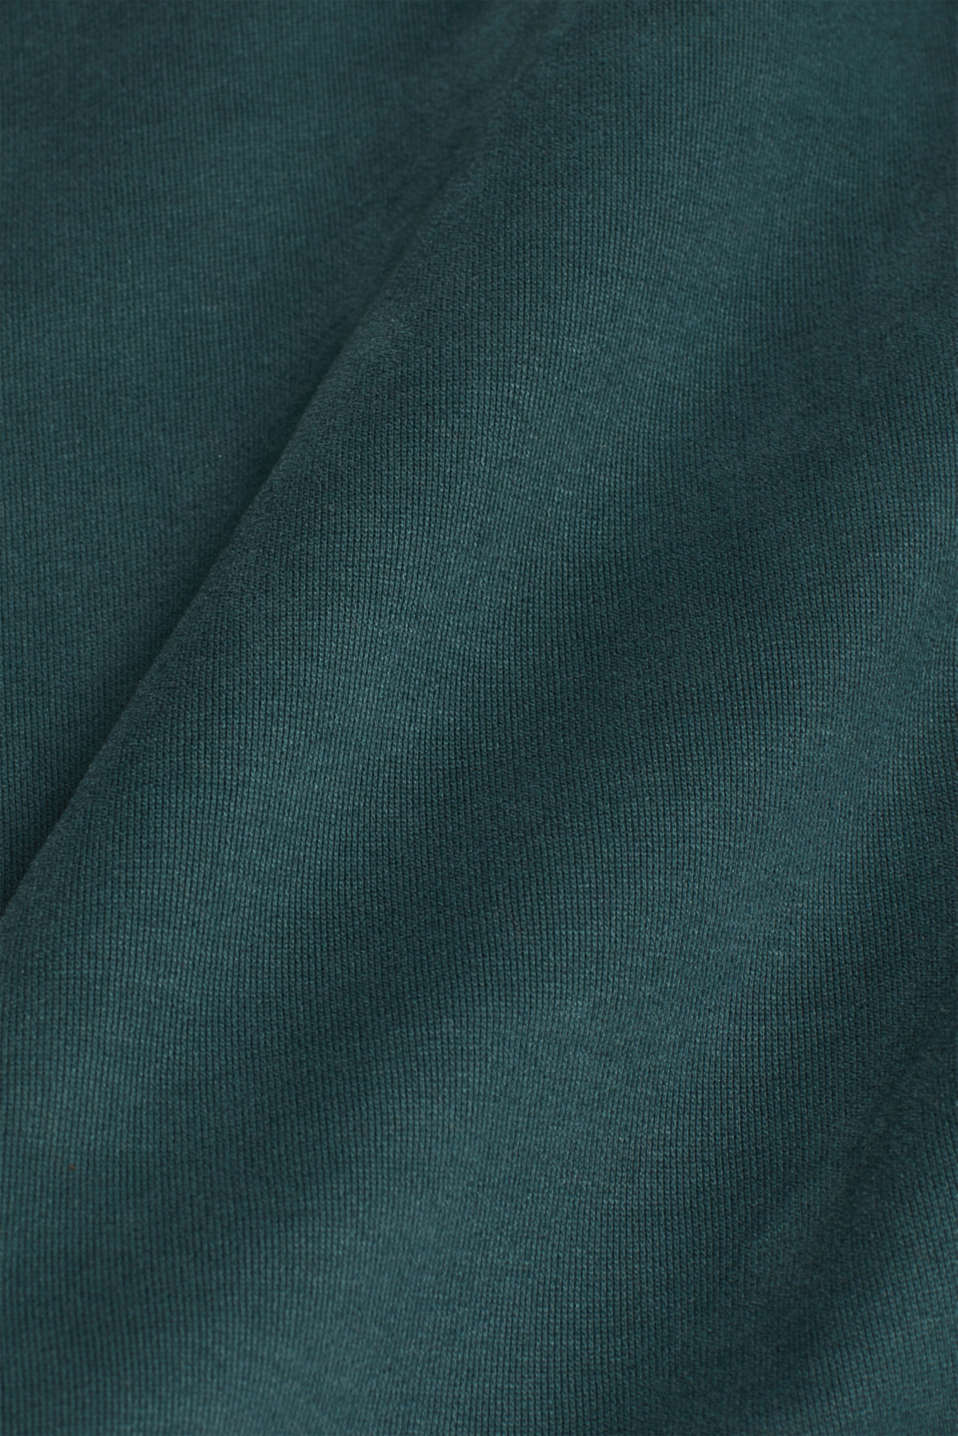 Sweatshirt in 100% cotton, BOTTLE GREEN, detail image number 4